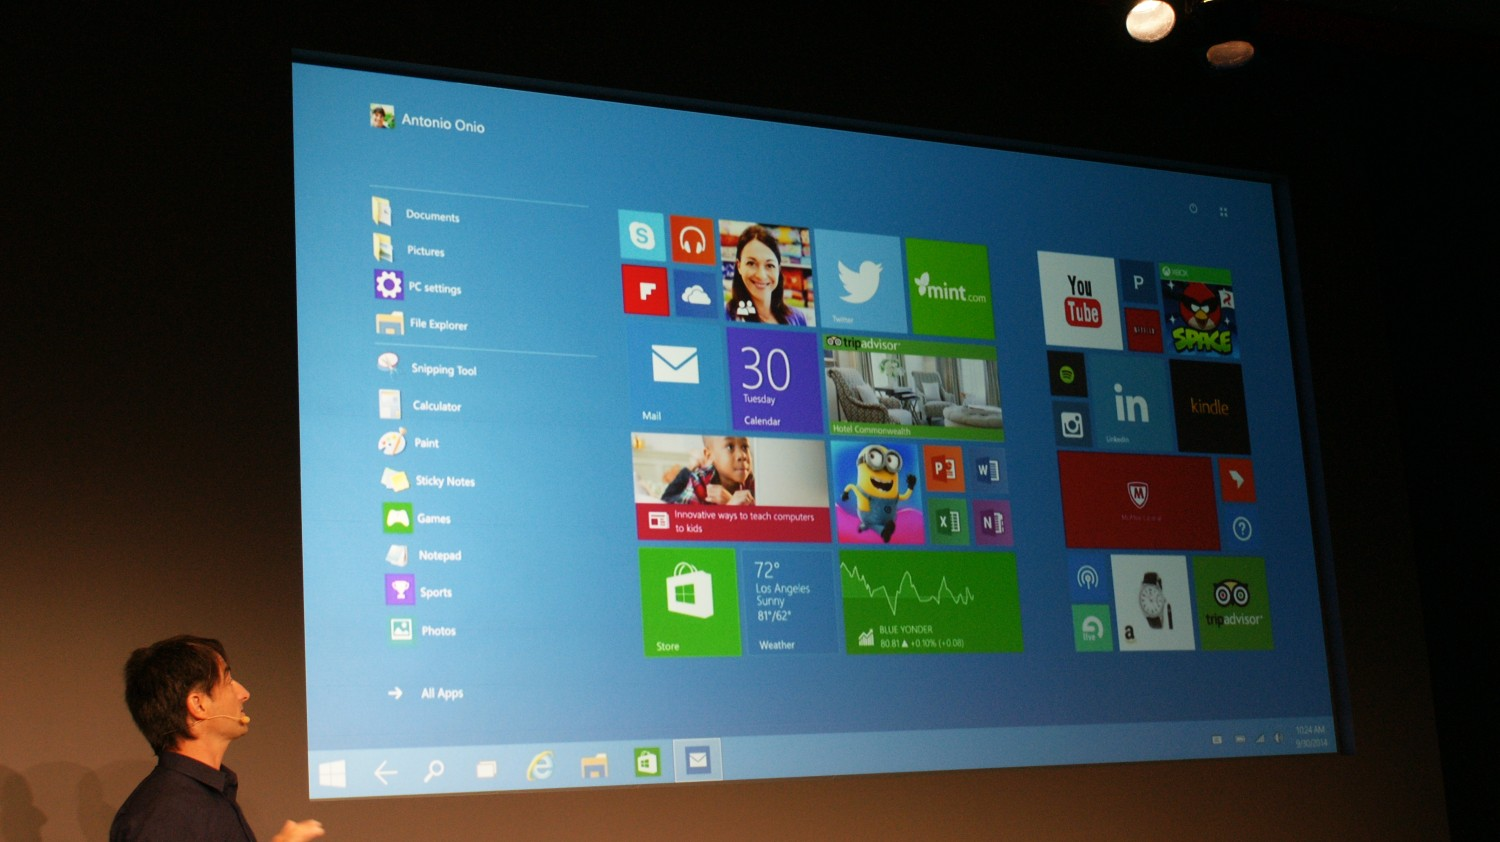 Microsoft Says Windows 10 Operating System Will Be Its Last Update